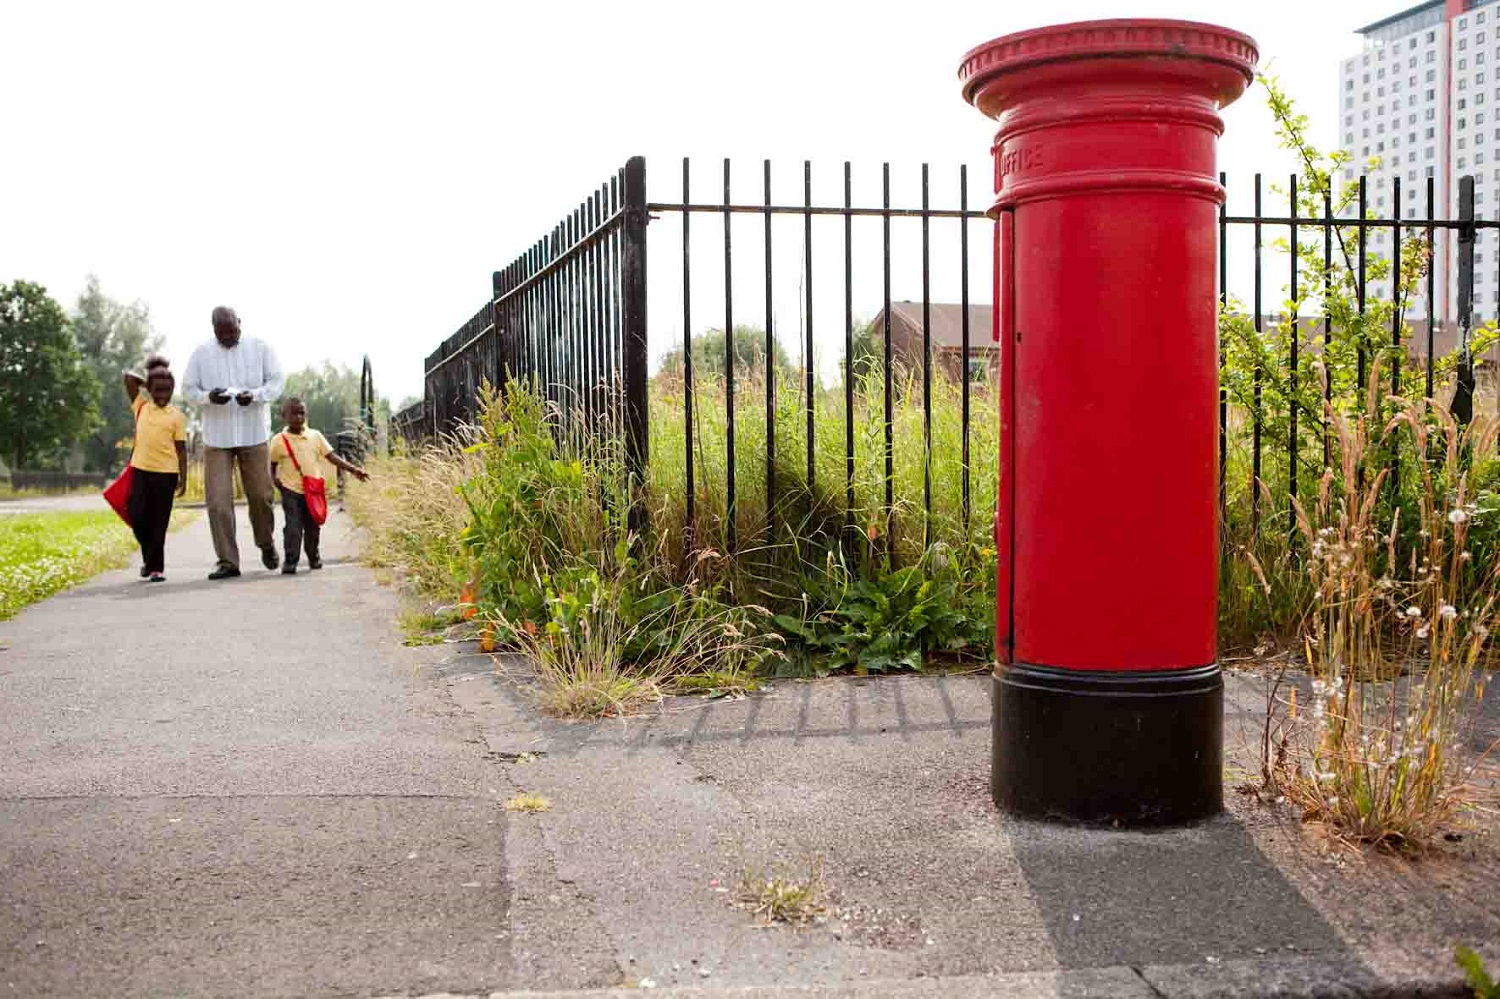 A refugee man and his two young children walk home from school. In the foreground ahead of them is a bright red British postbox.